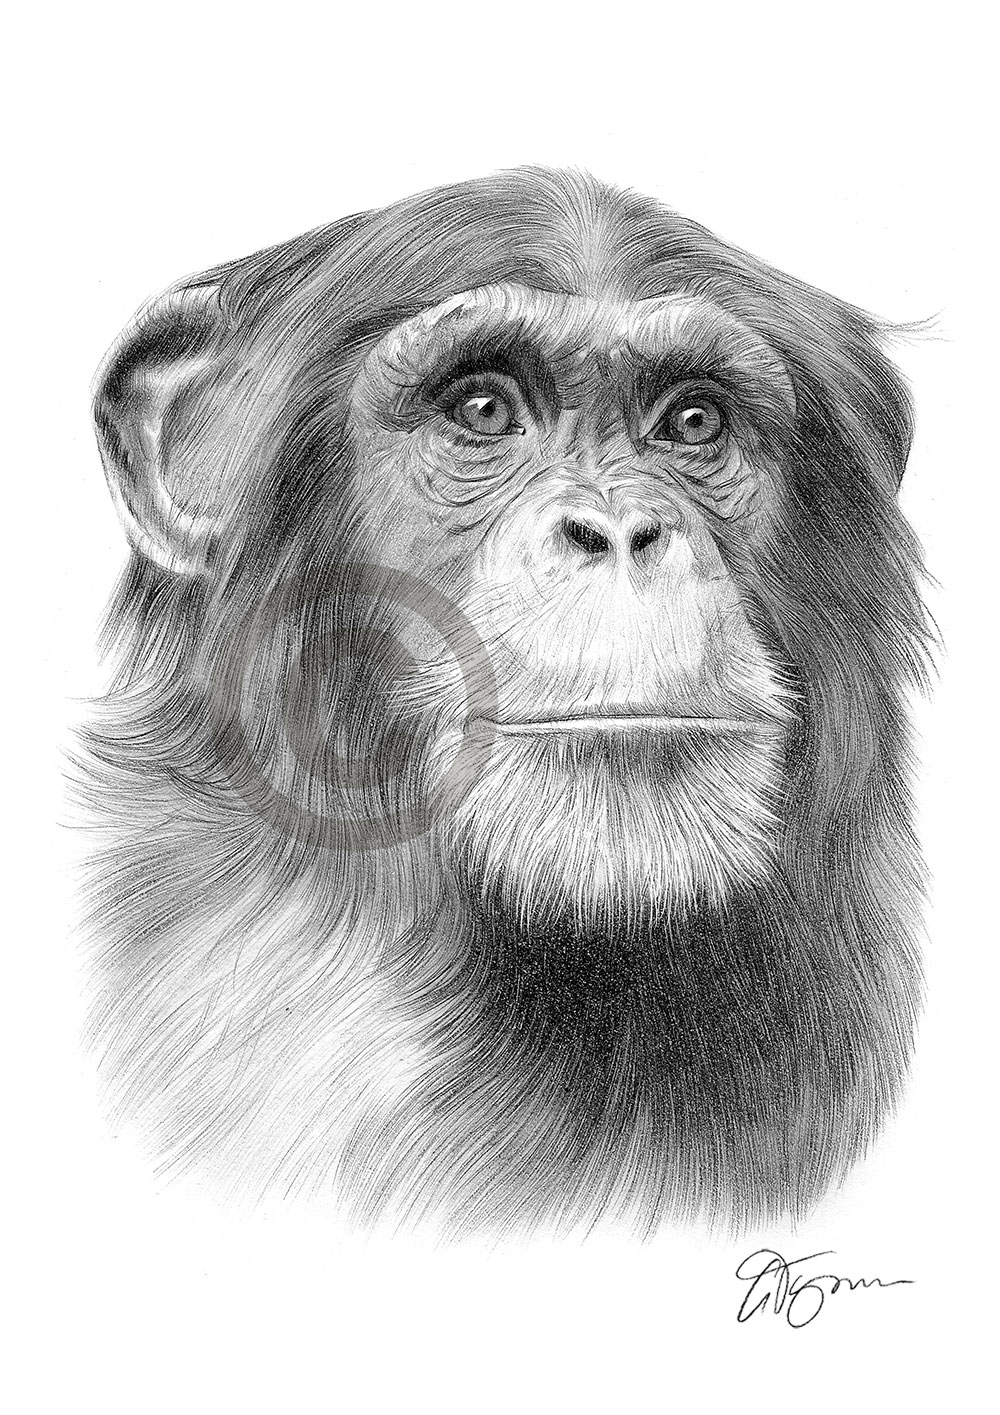 Pencil drawing of a Chimpanzee by artist Gary Tymon